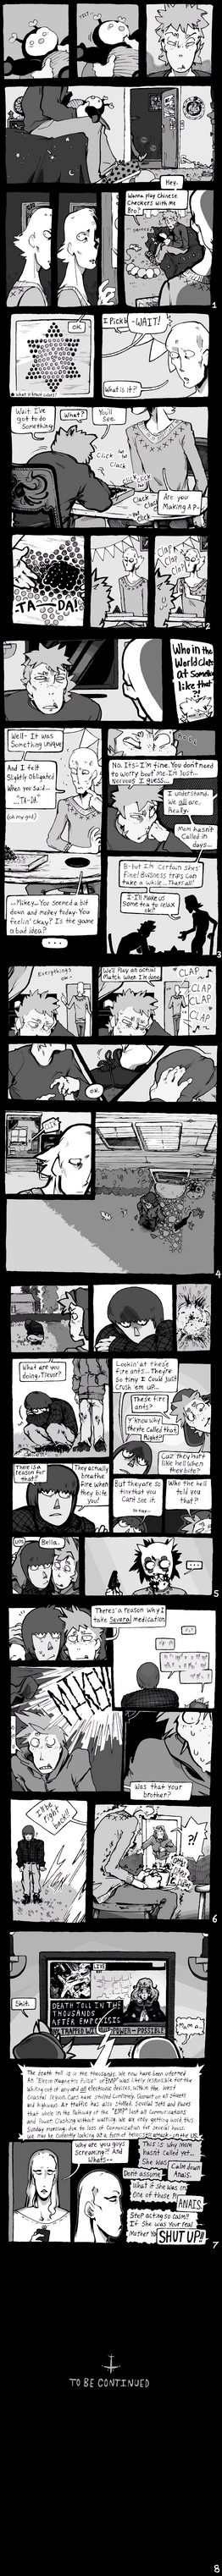 O.S.A.A.T. Part 1. (strip) by VelvetDelusion